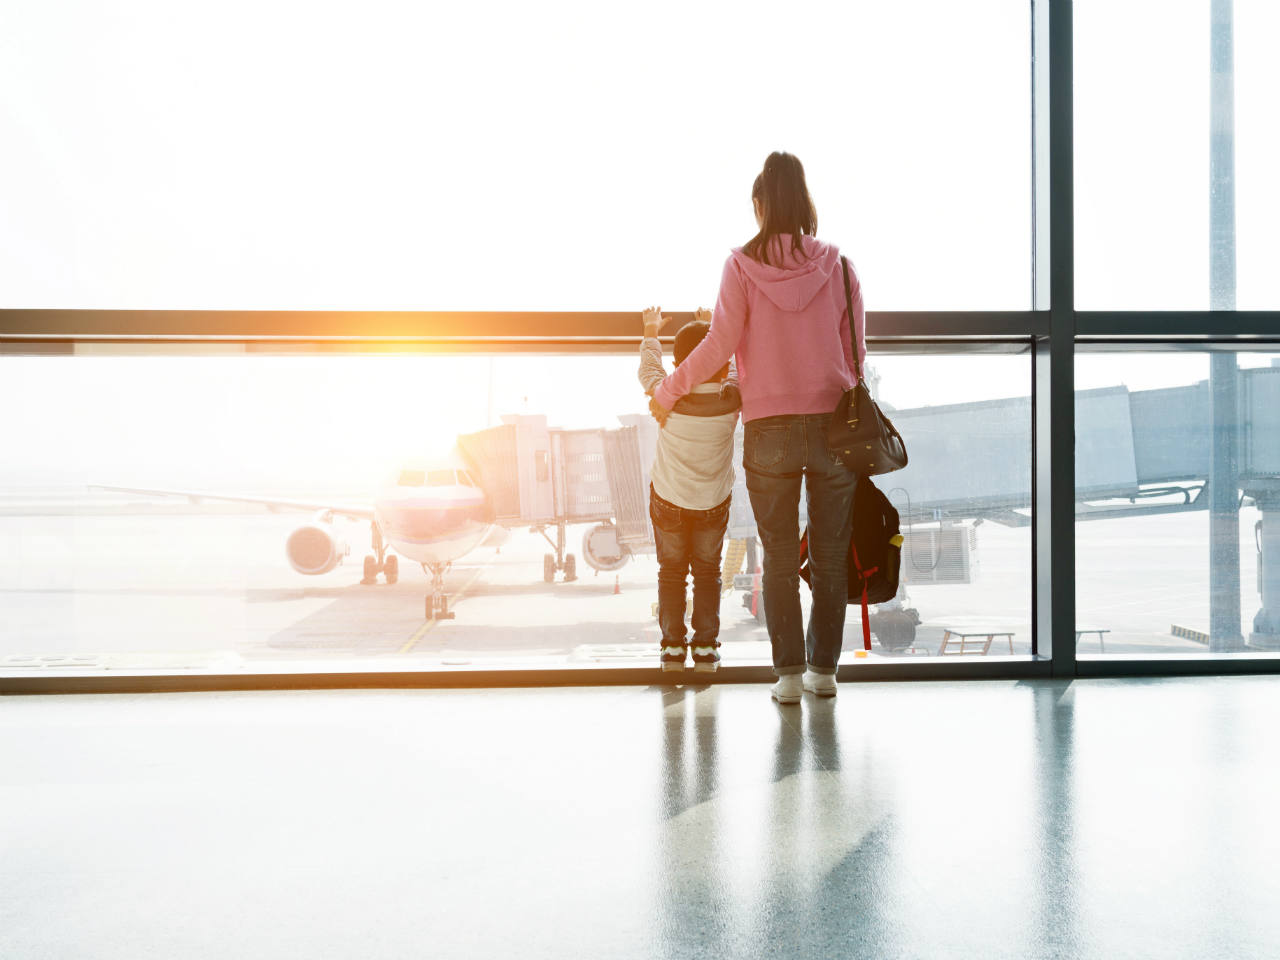 A woman and little boy looking out at an airplane